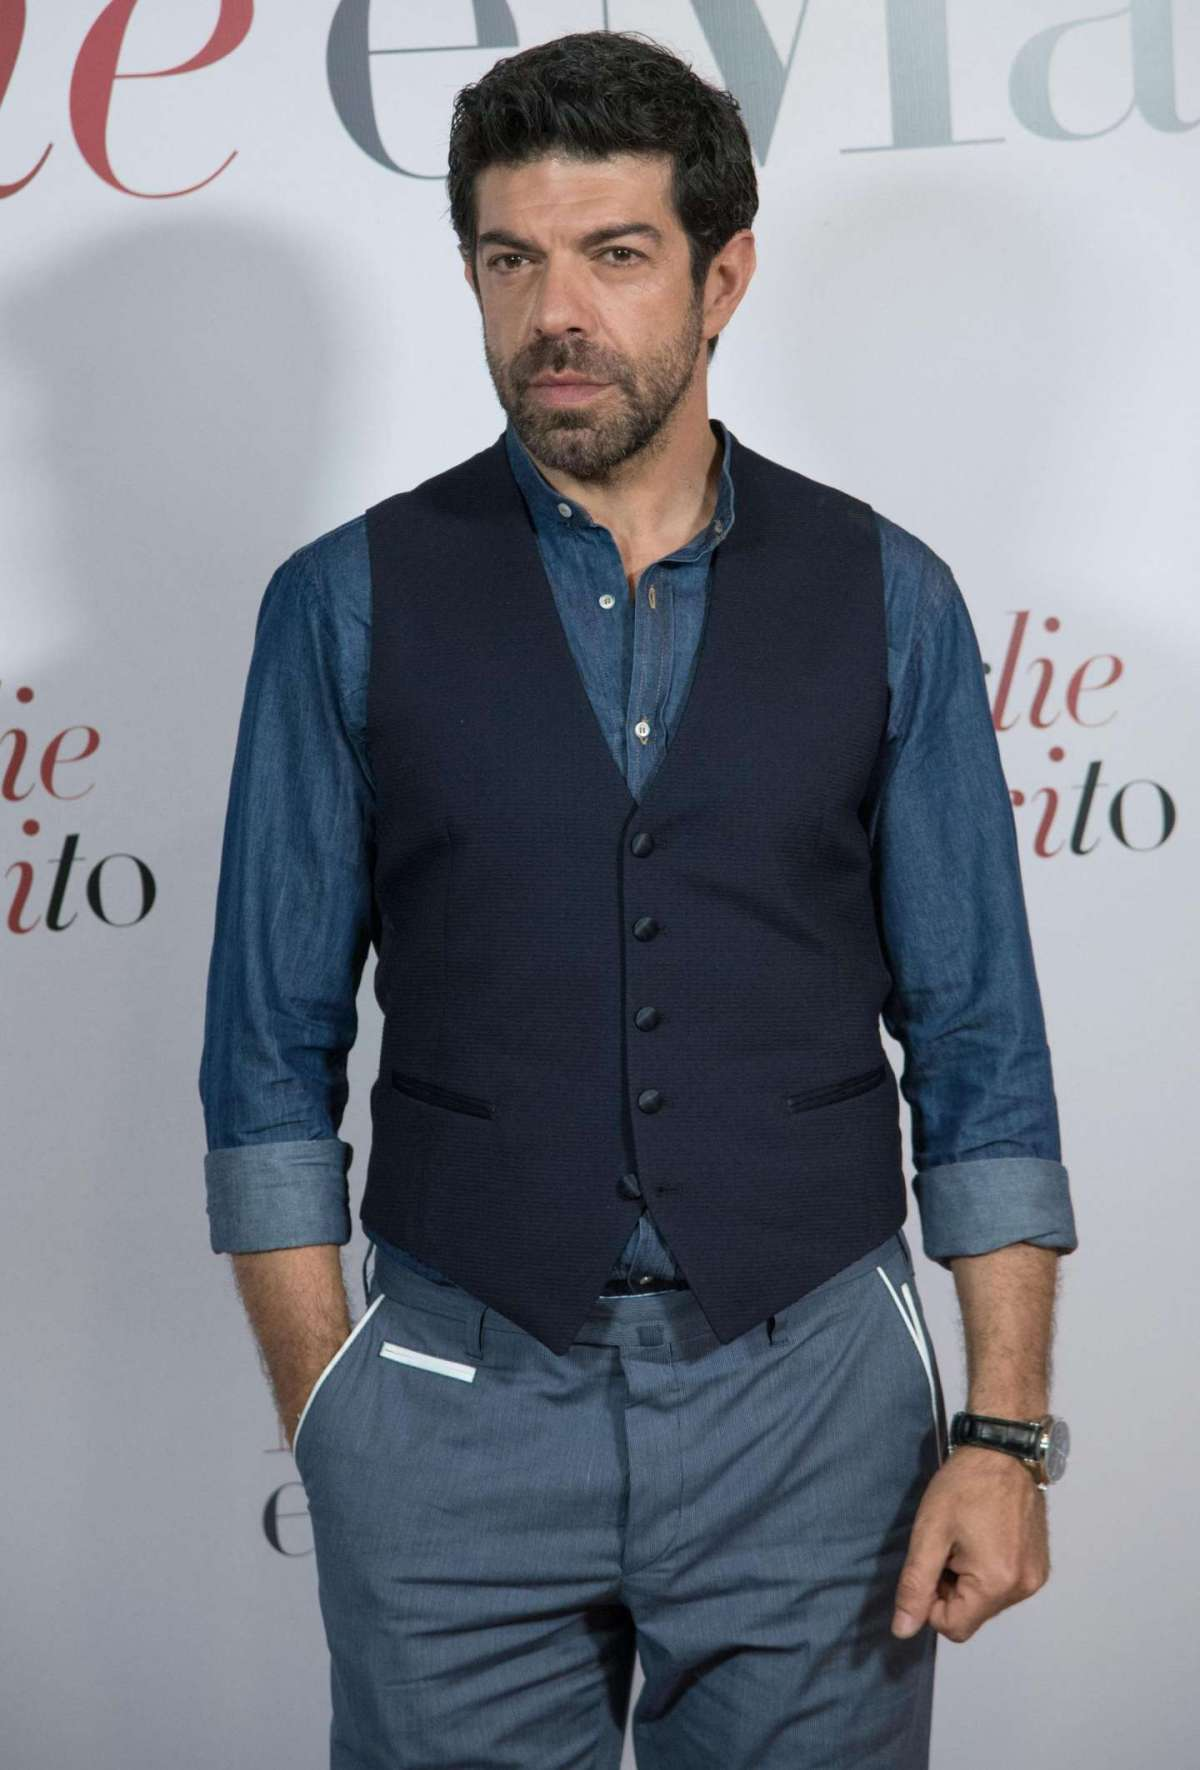 Pierfrancesco Favino in gilet